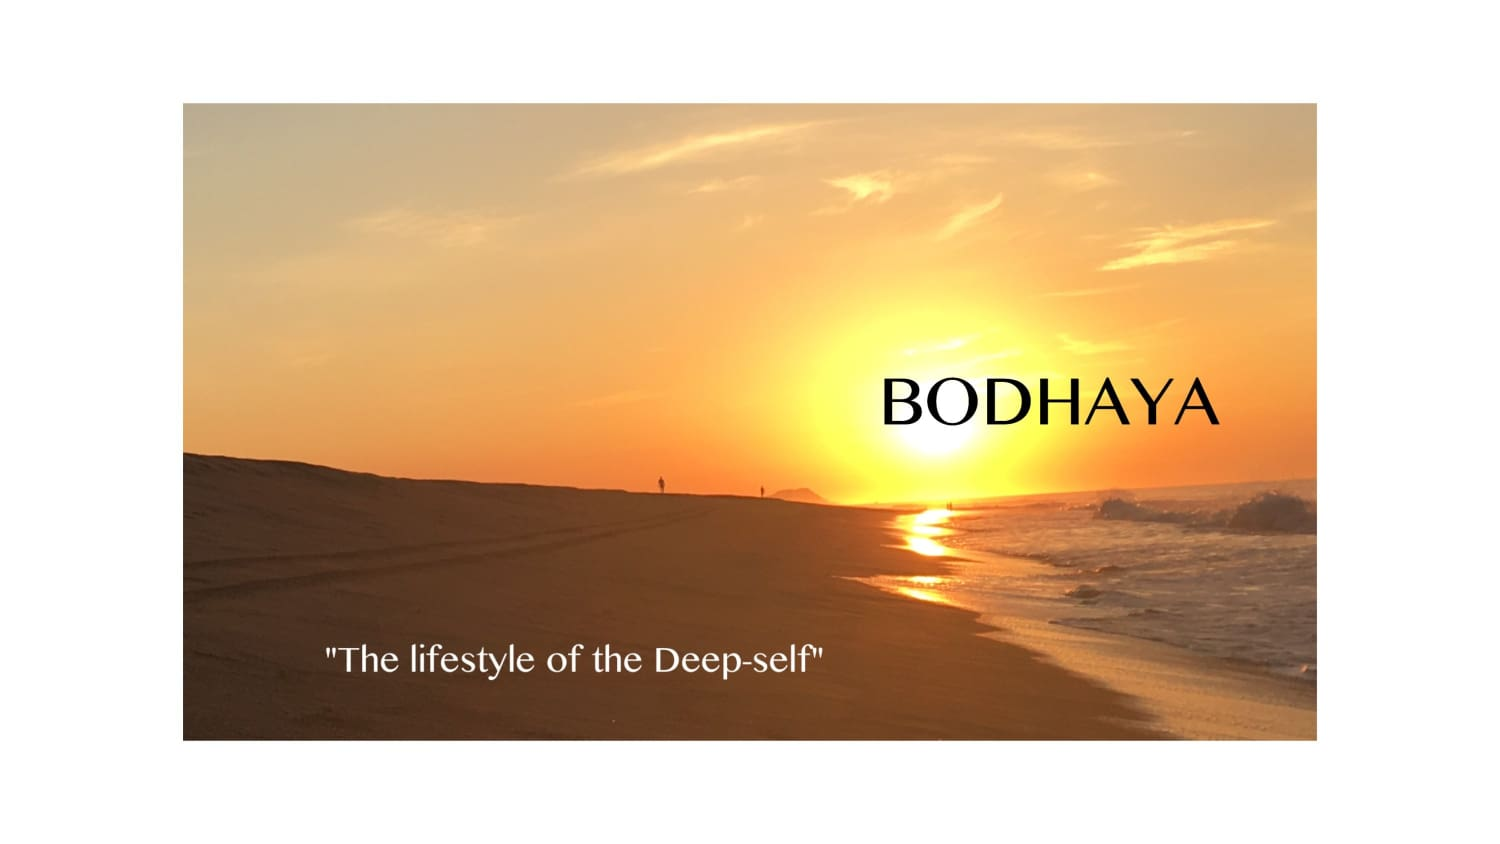 Welcome to Bodhaya!